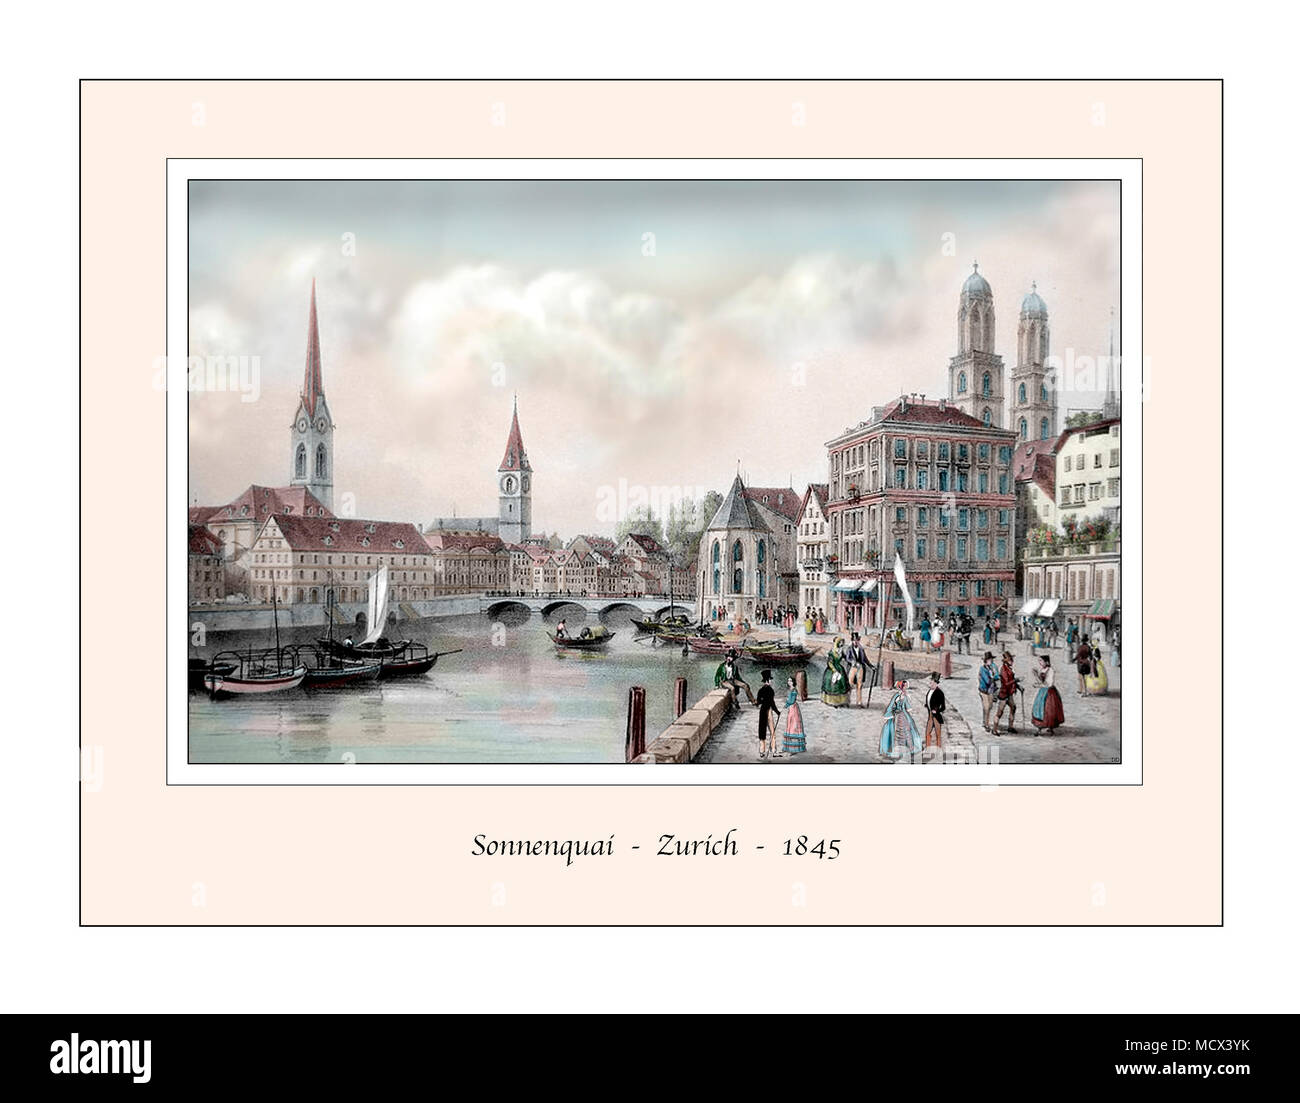 Sonnenquai Zurich Original Design based on a 19th century Engraving - Stock Image